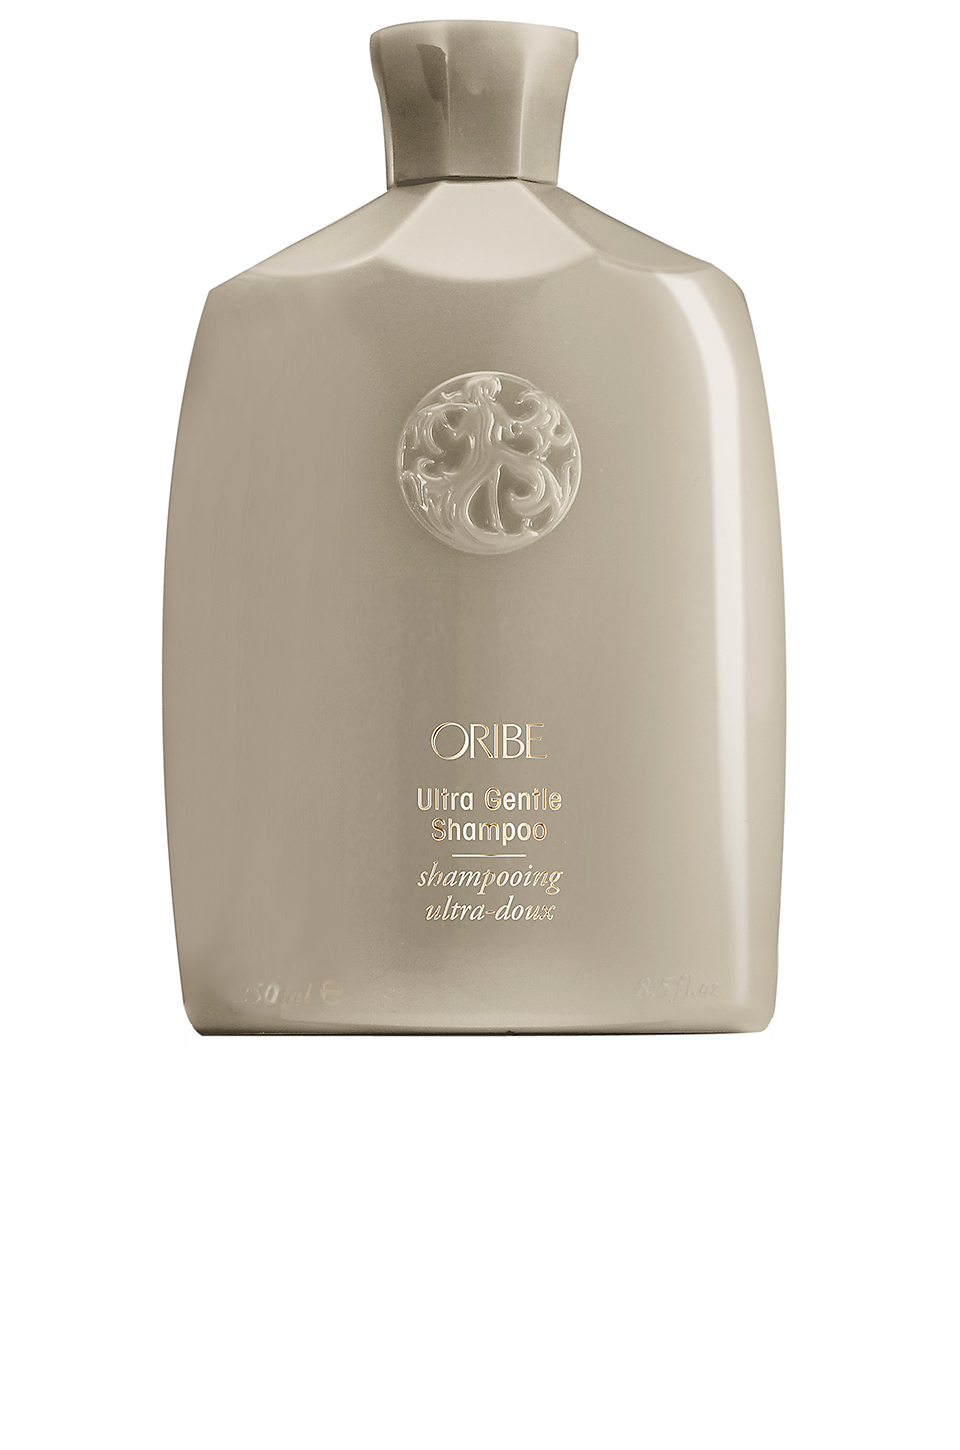 Oribe Ultra Gentle Shampoo in